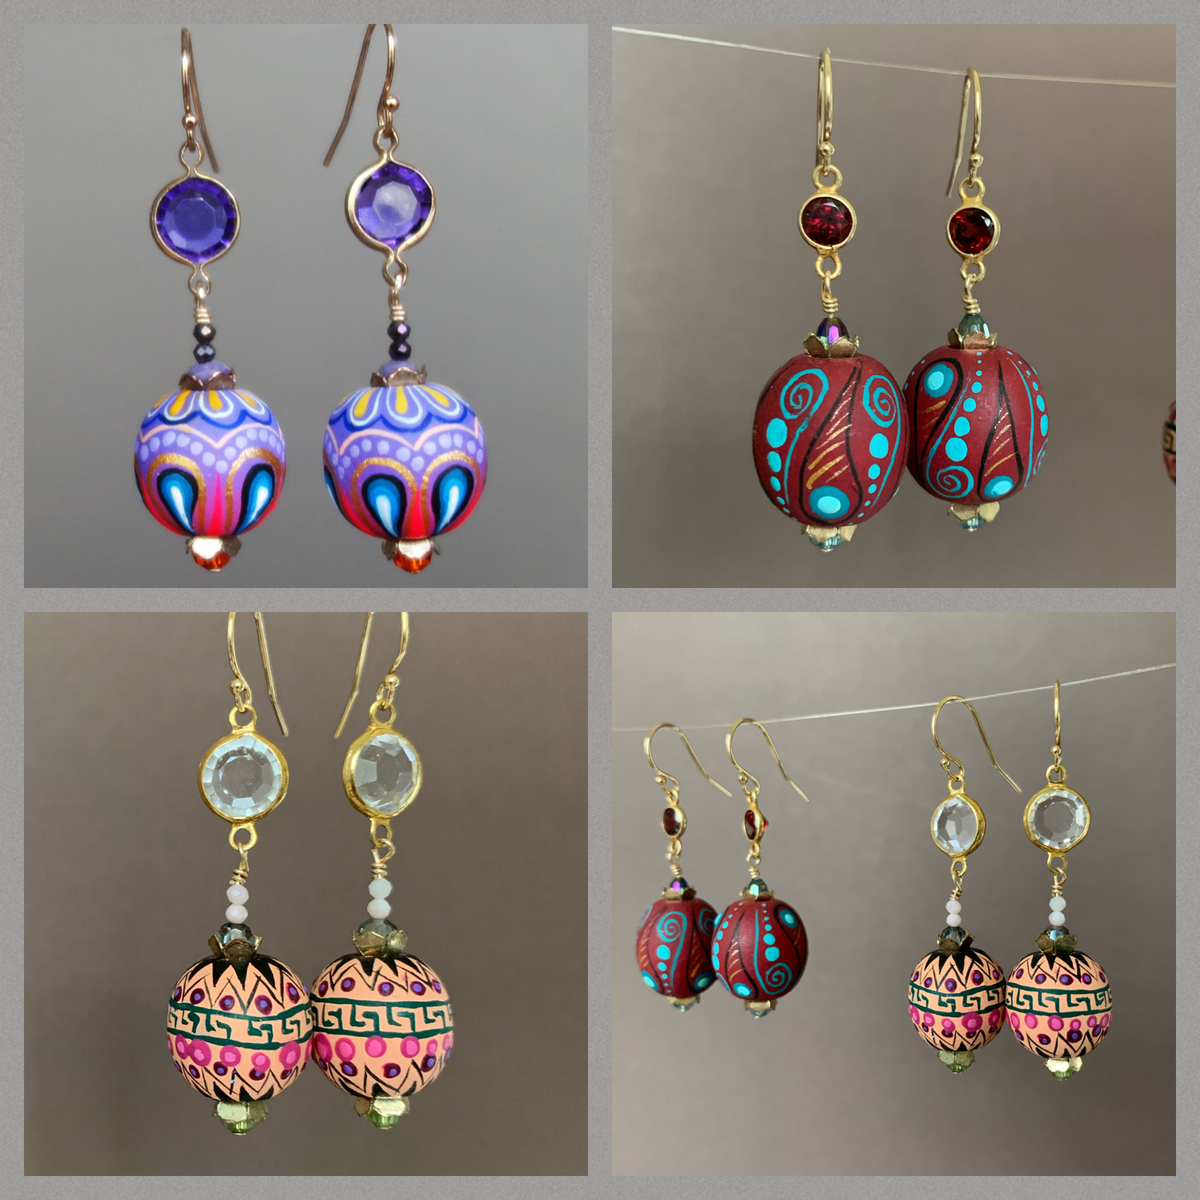 Dios Mio gemstone earrings